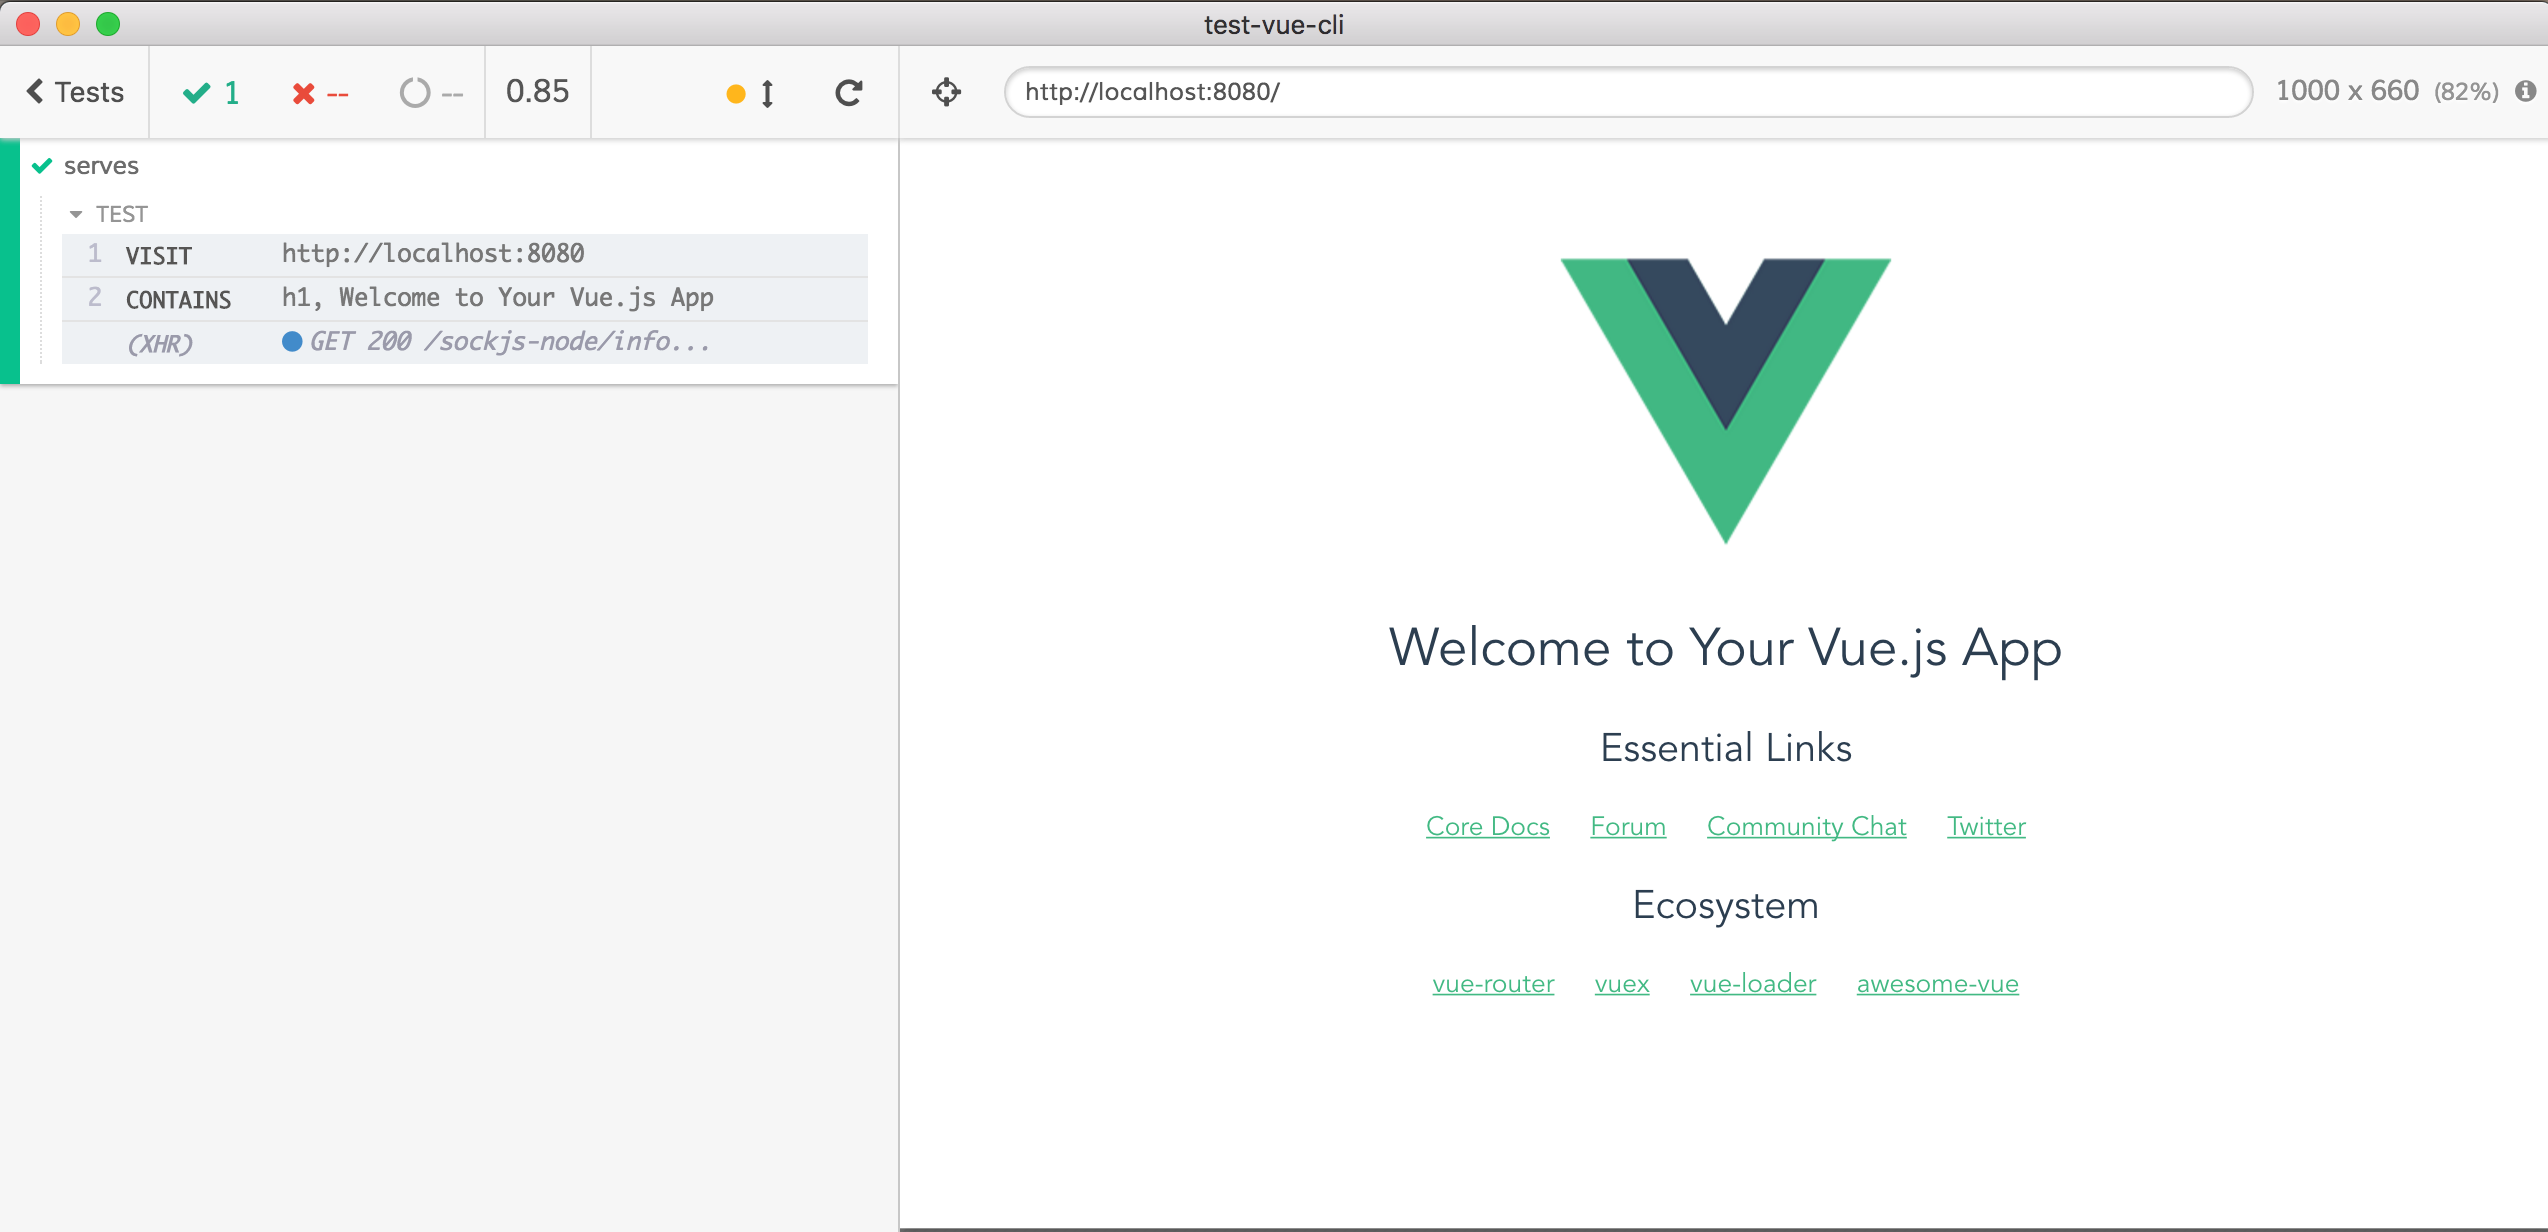 Testing Vue CLI reload | Better world by better software